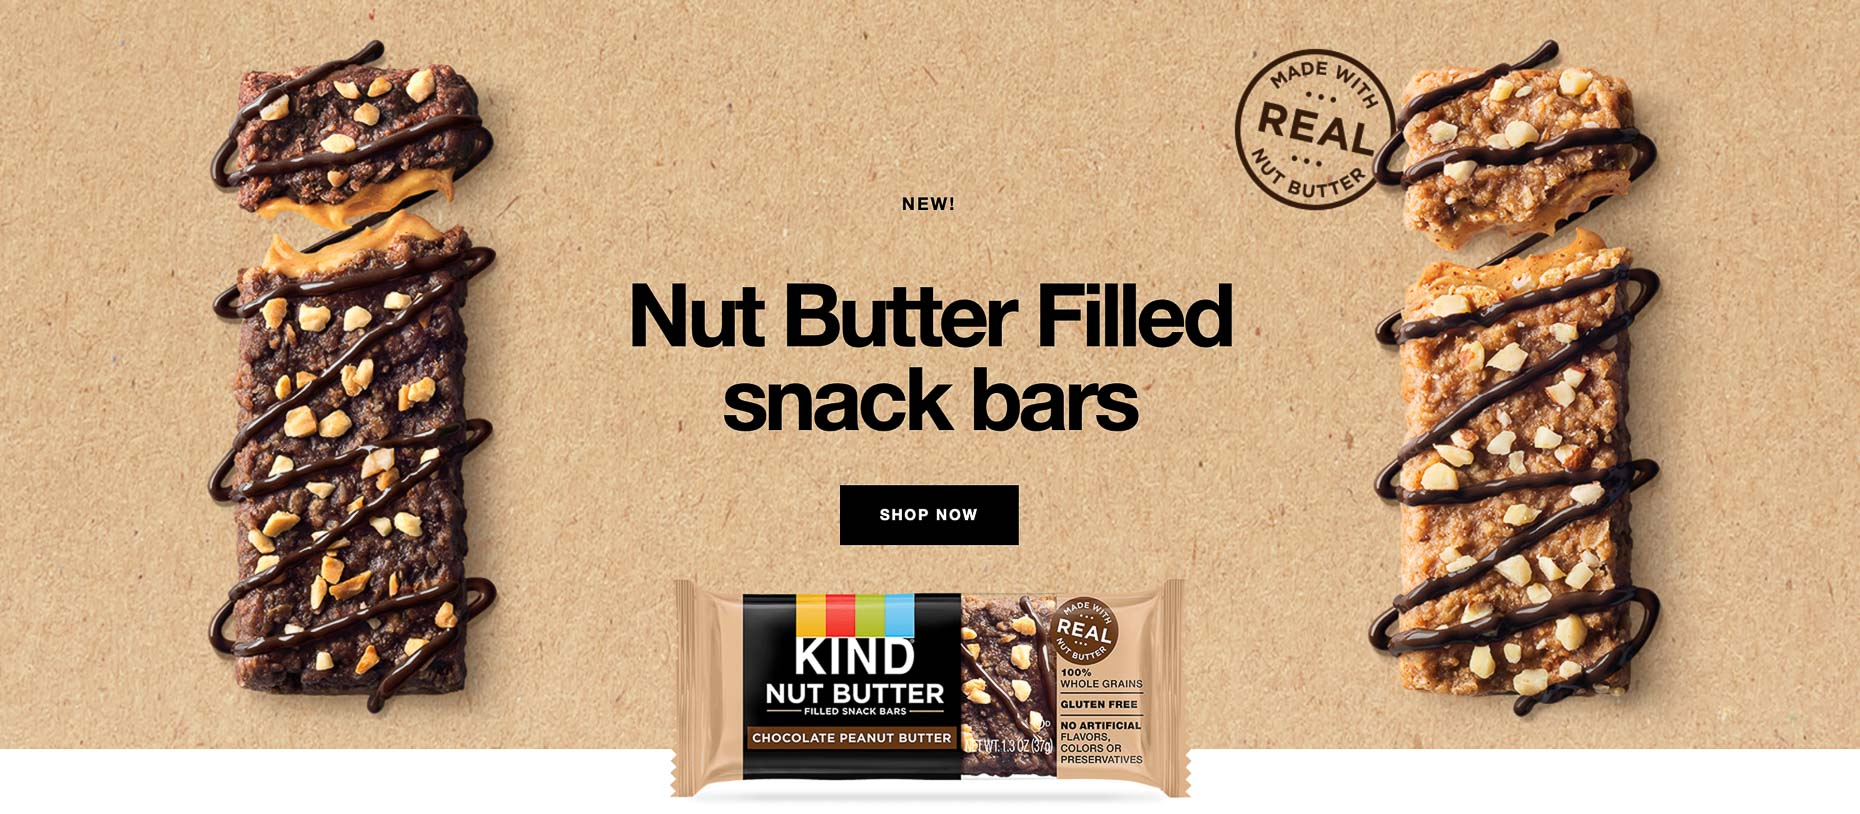 kind_nut_butter_filled